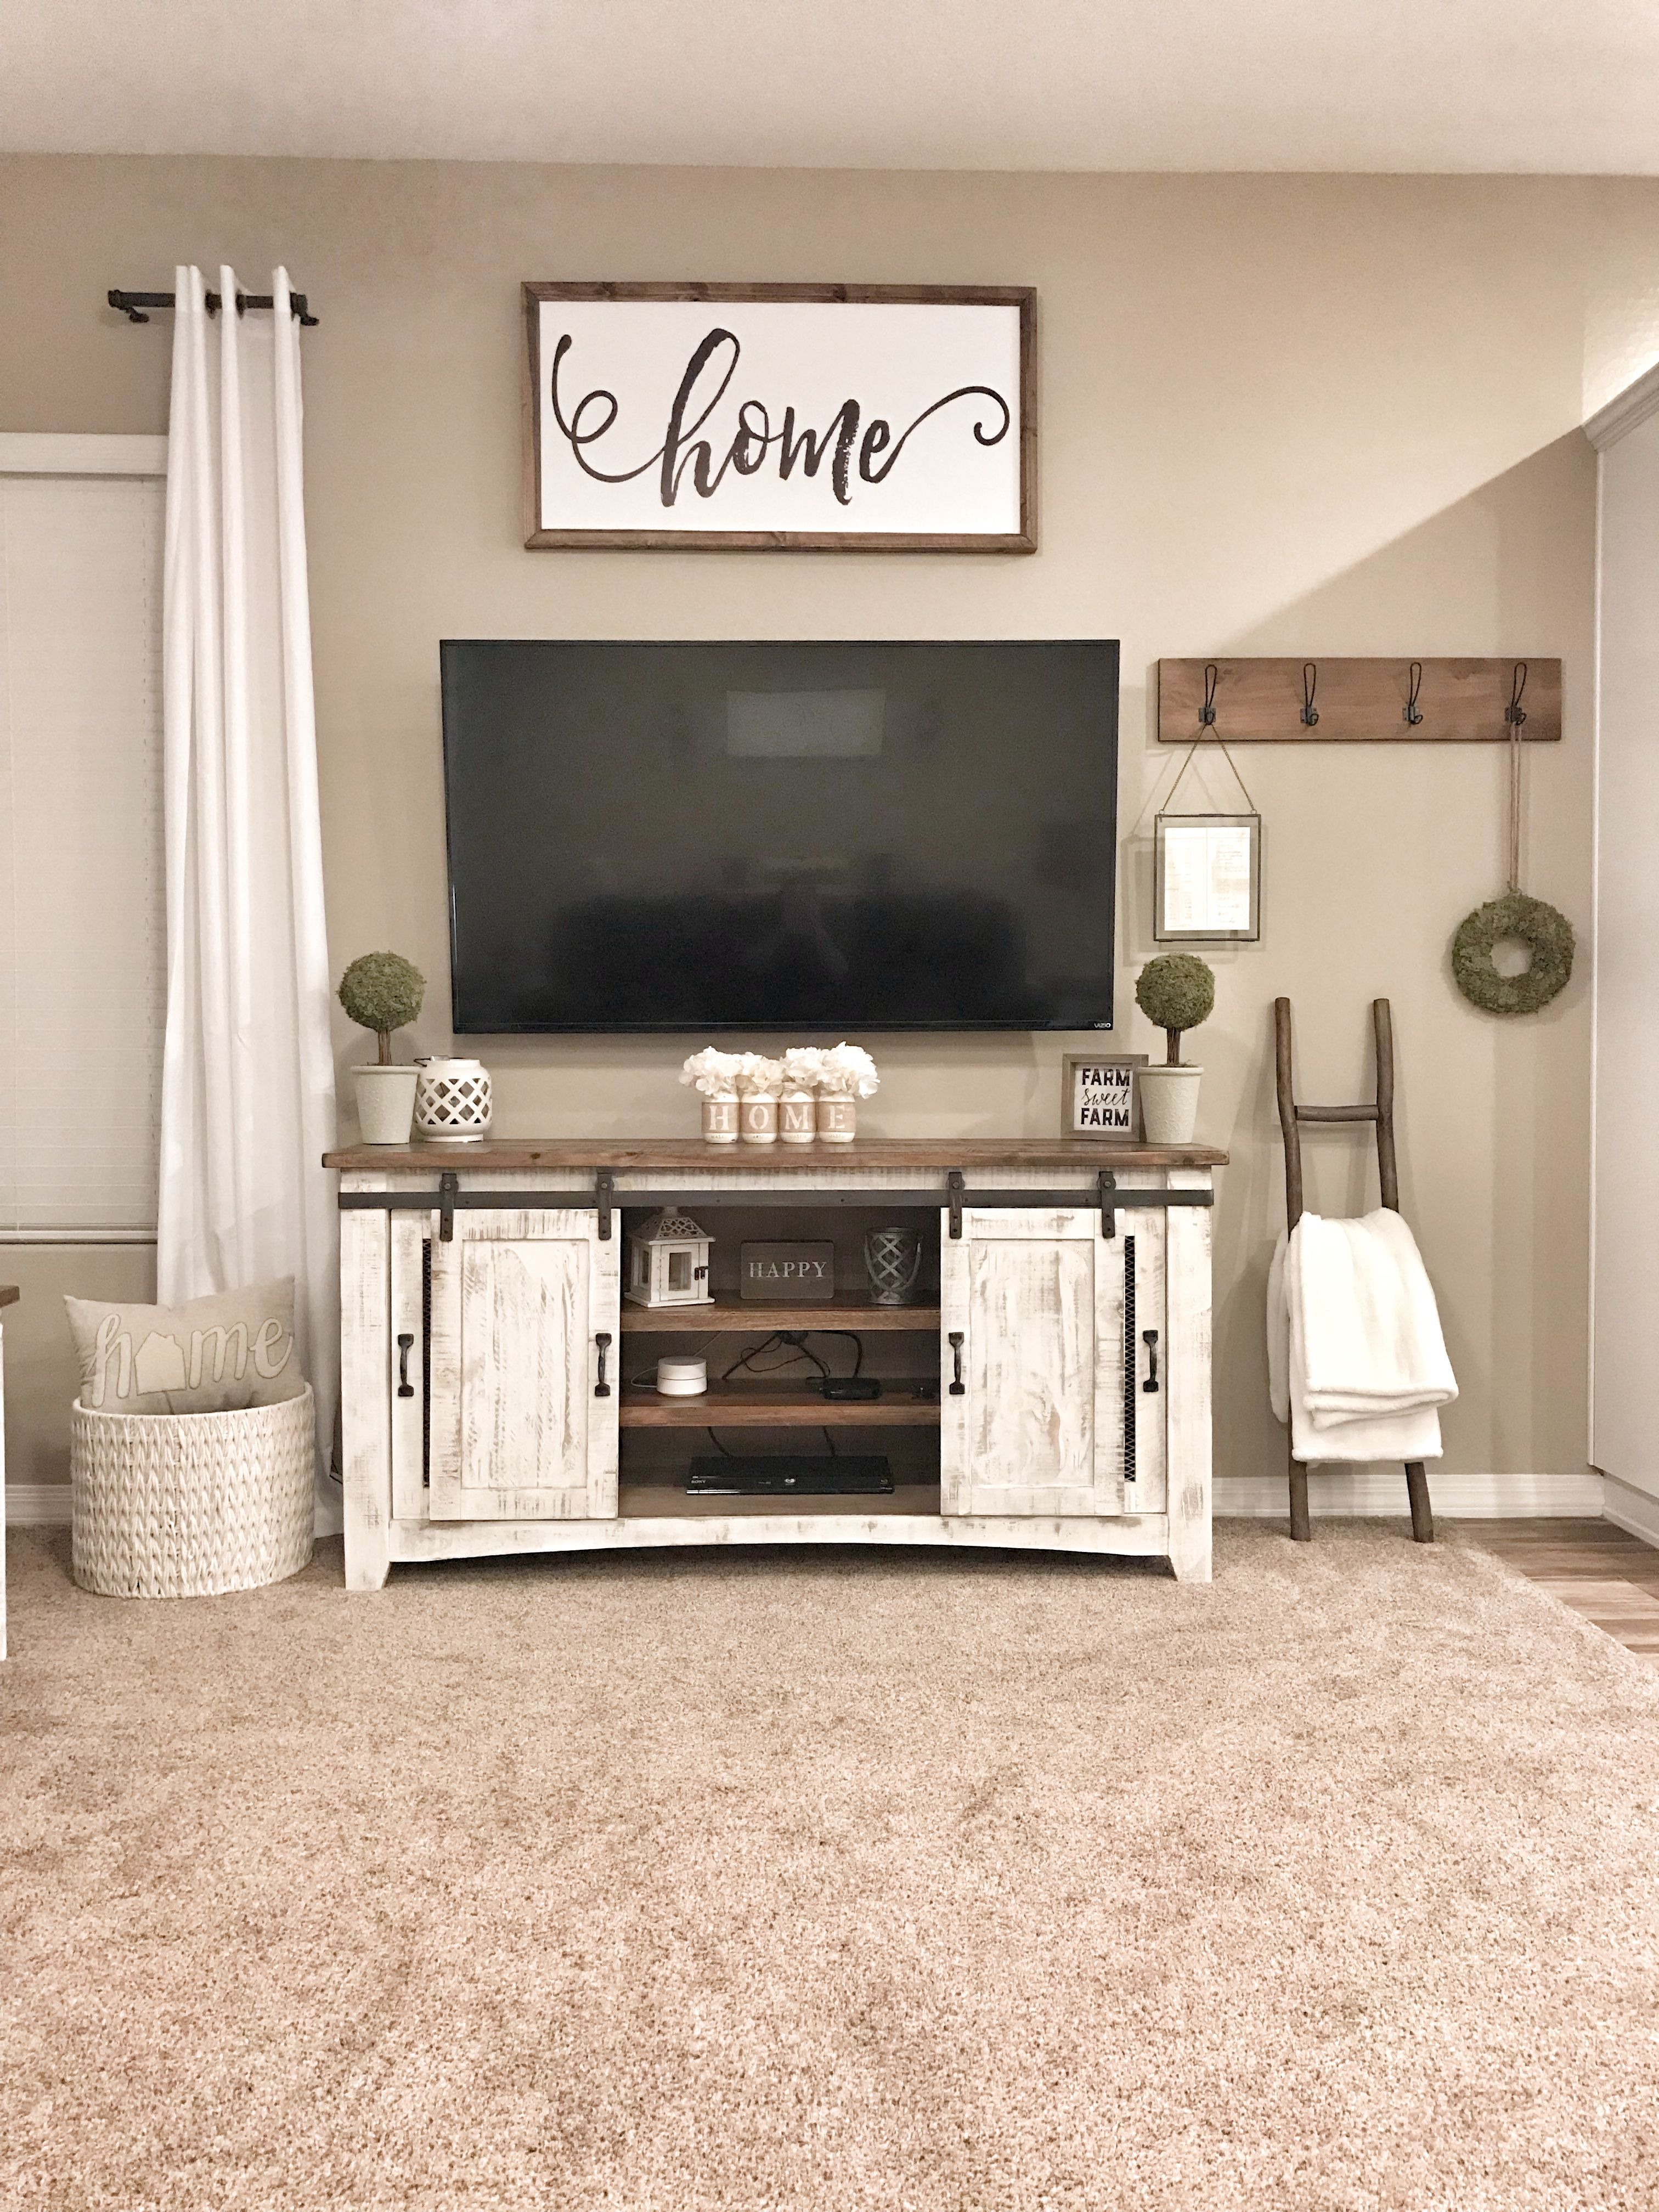 Design For Living Room Tv Cabinet: Setup With Home Theater Seating